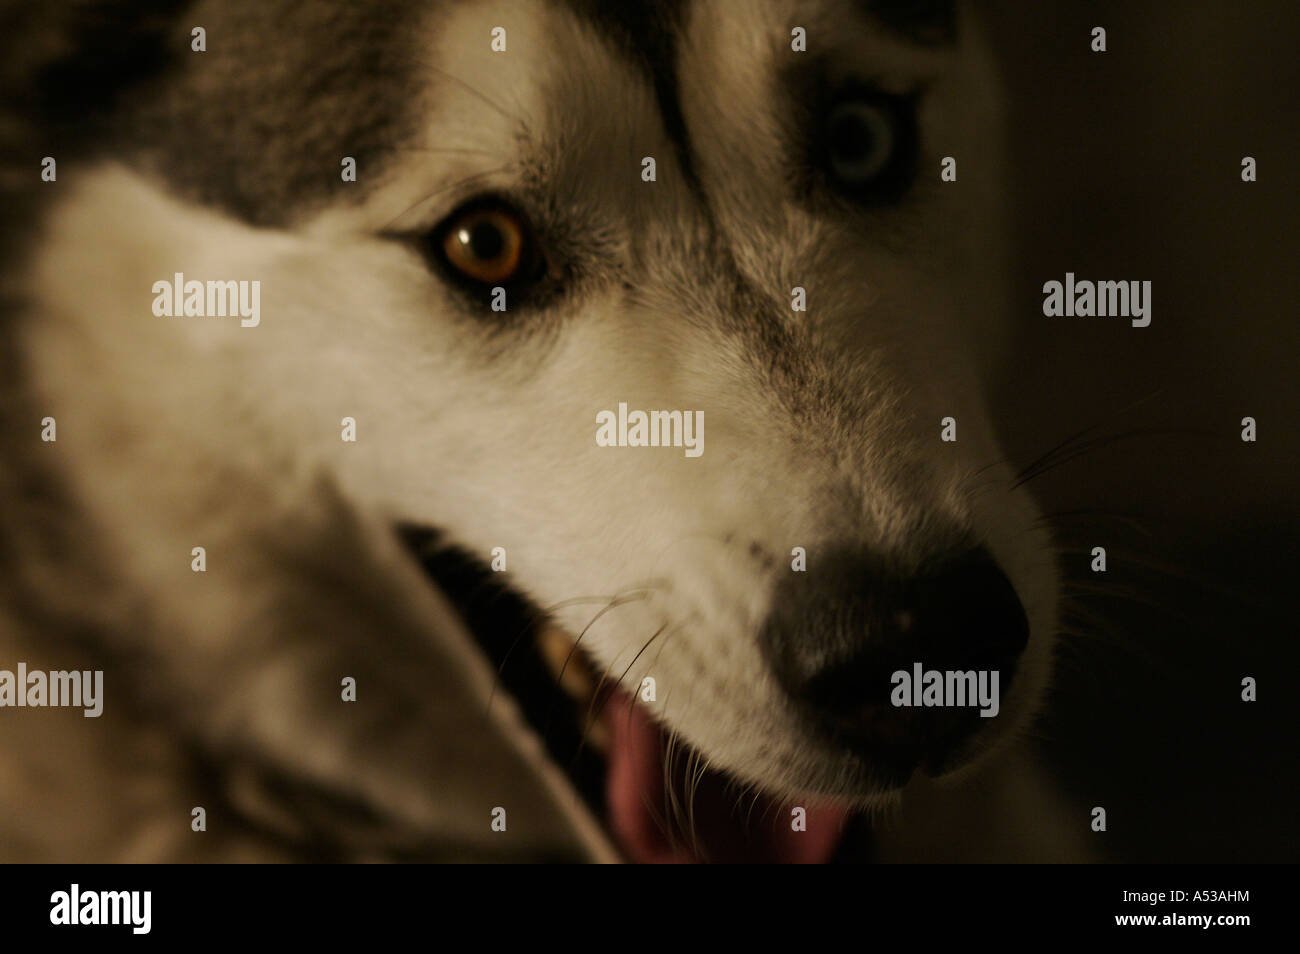 Portrait: Wolfe (siberian husky) - Coughing - Stock Image